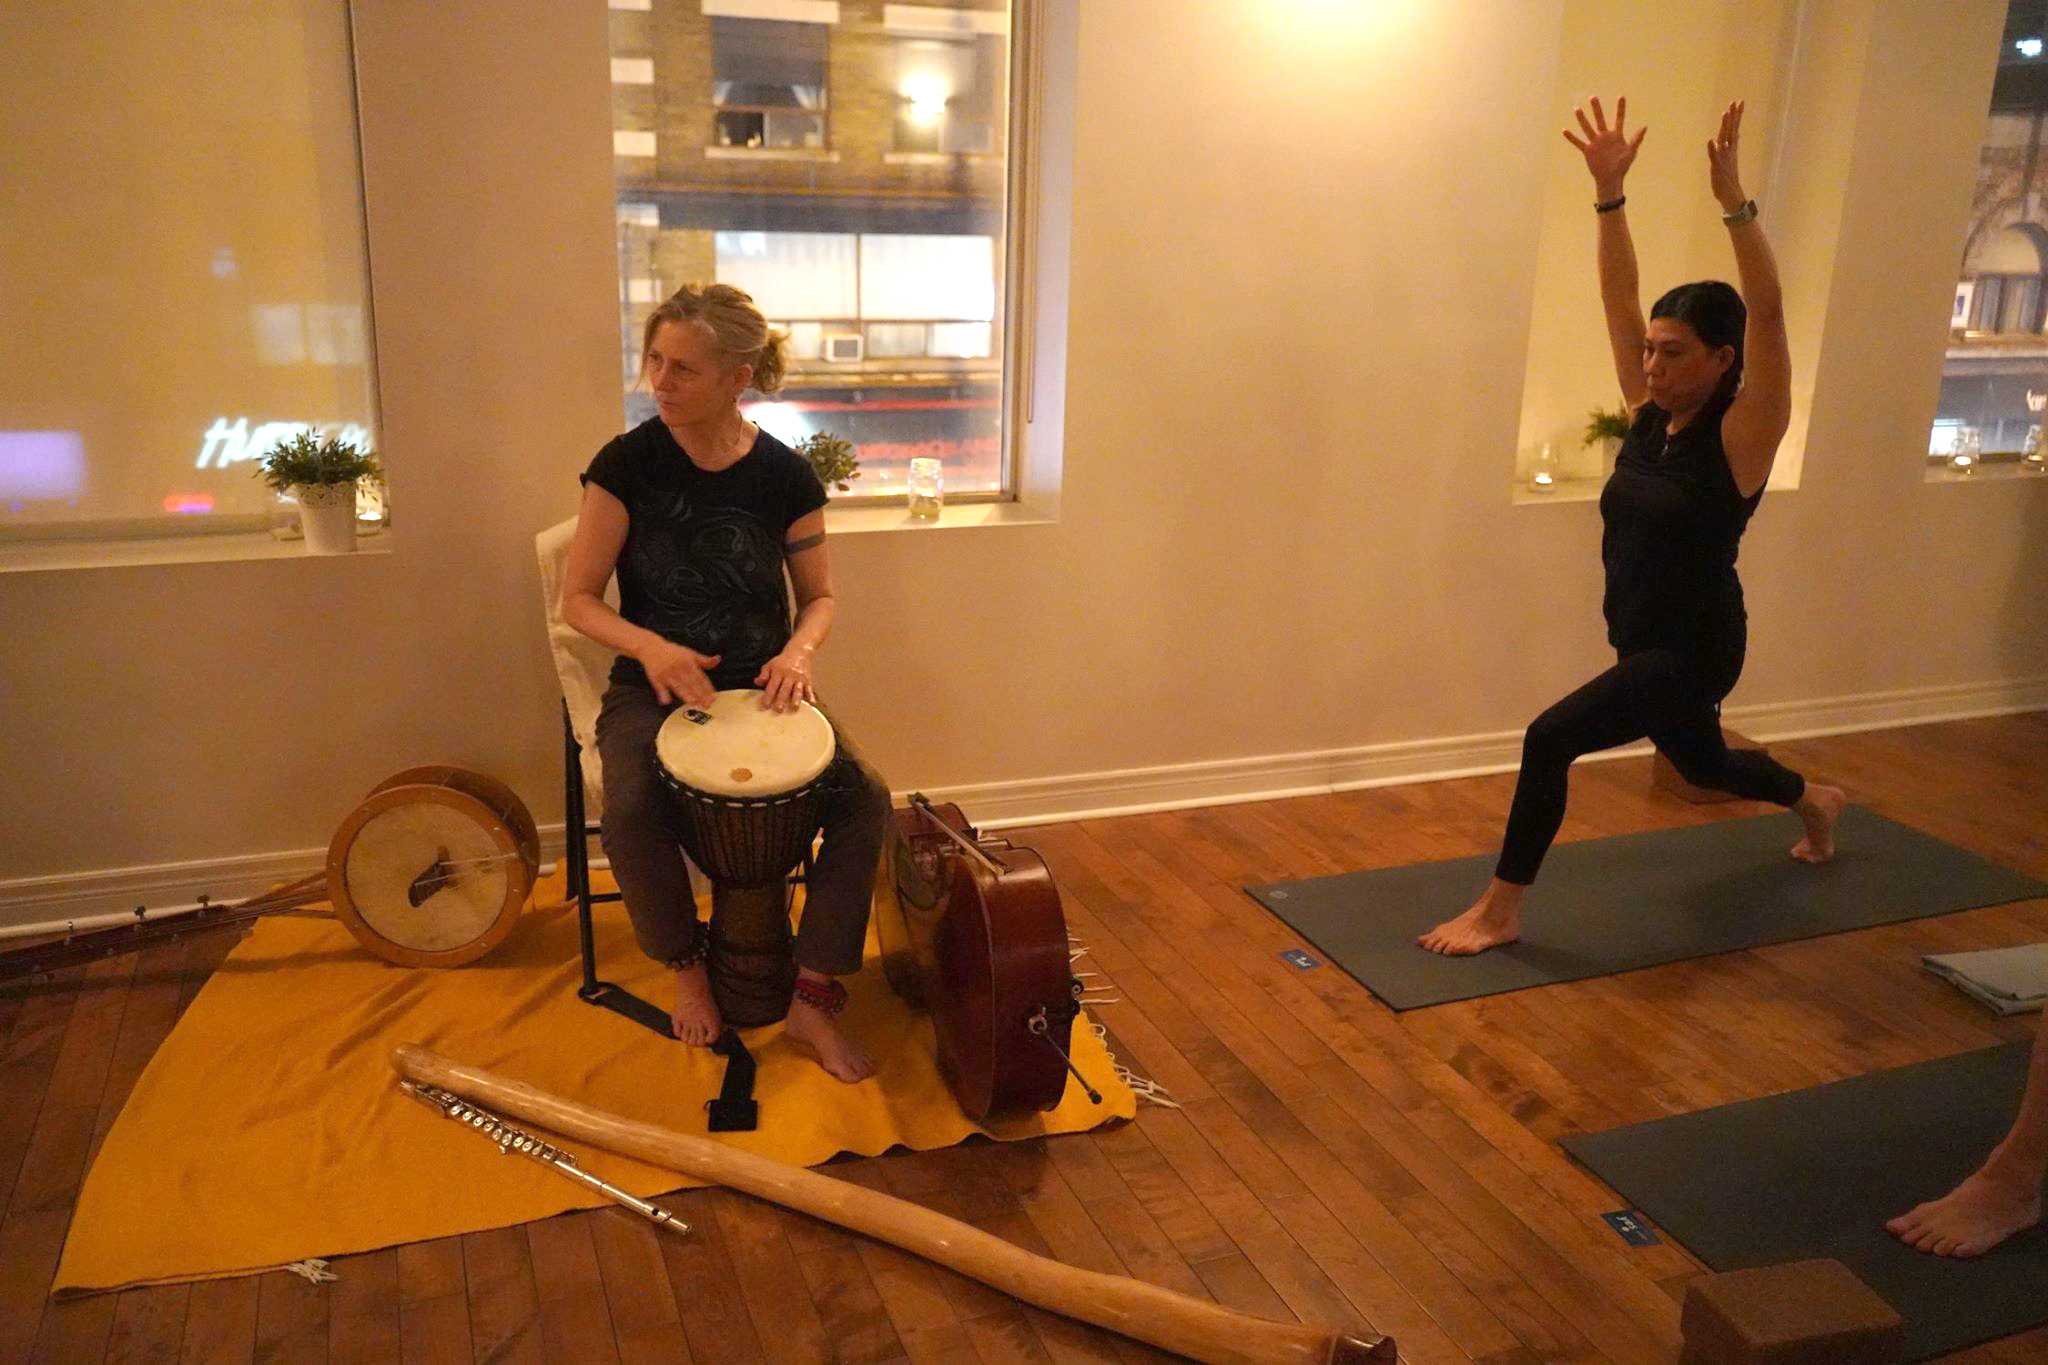 Playing djembe for Buddha On Fire charity yoga class, 2019. We produce this event a few times a year to benefit education for kids in a Nairobi slum.